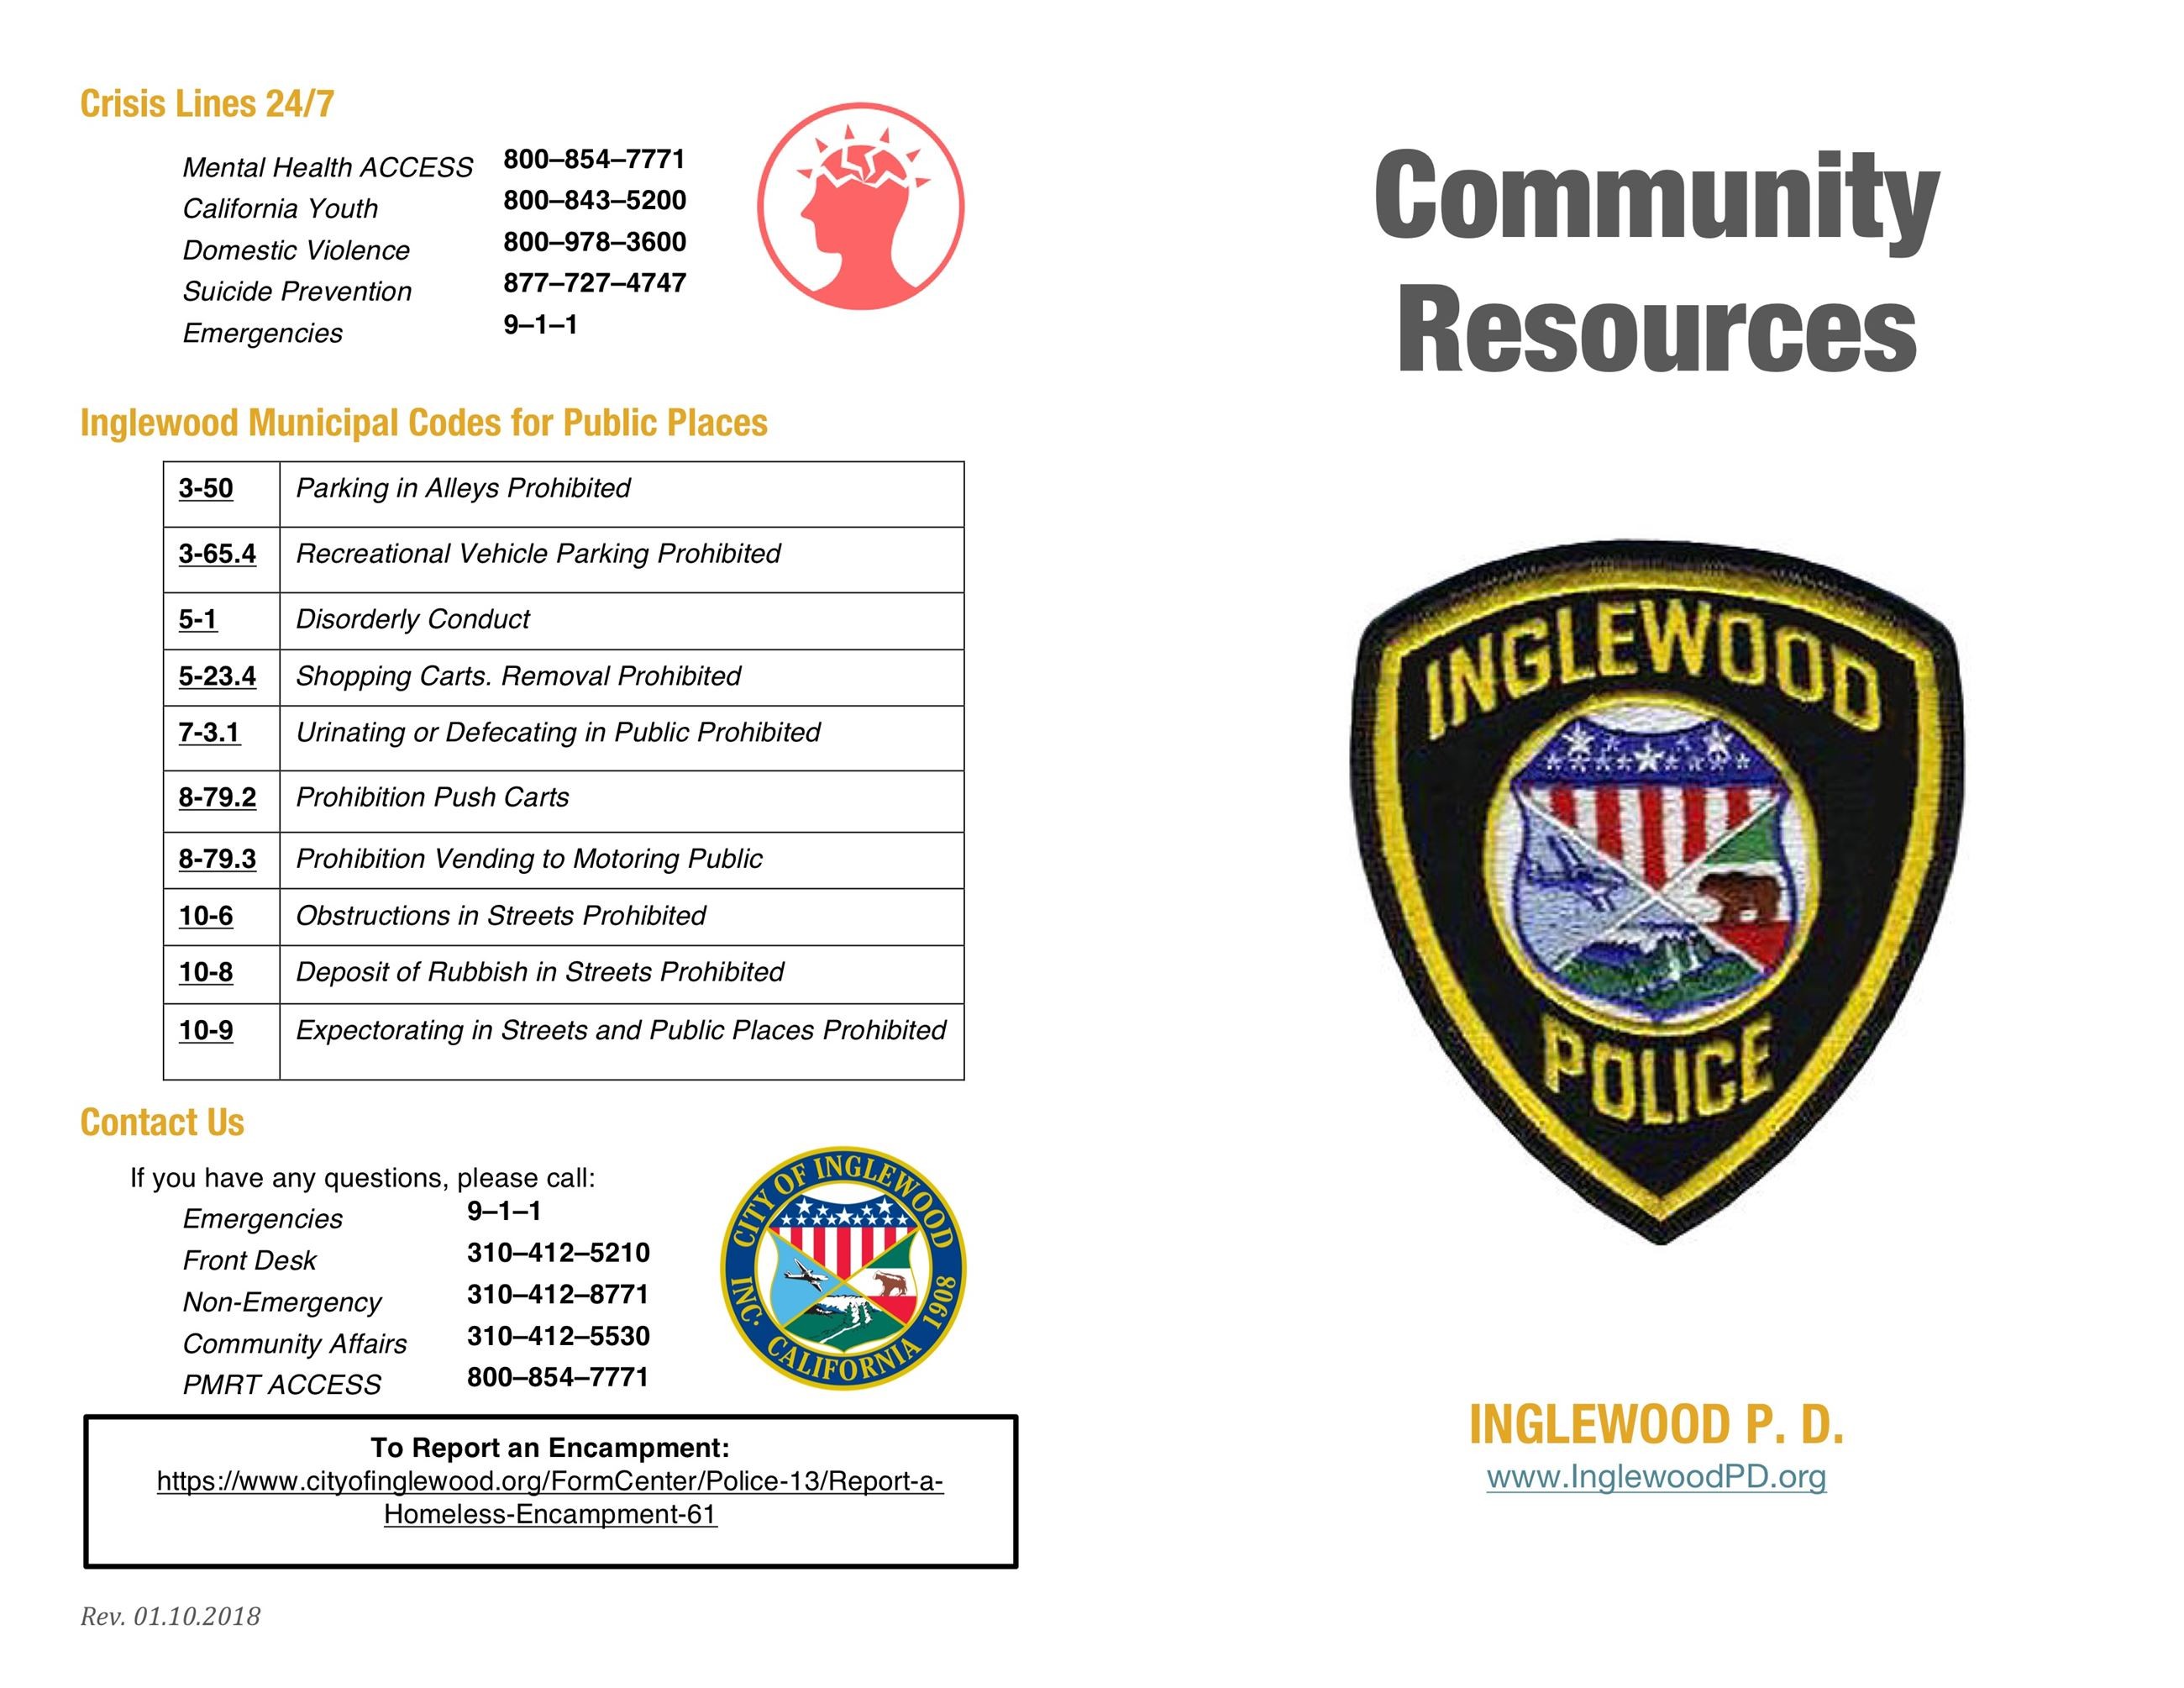 Community Resource Brochure